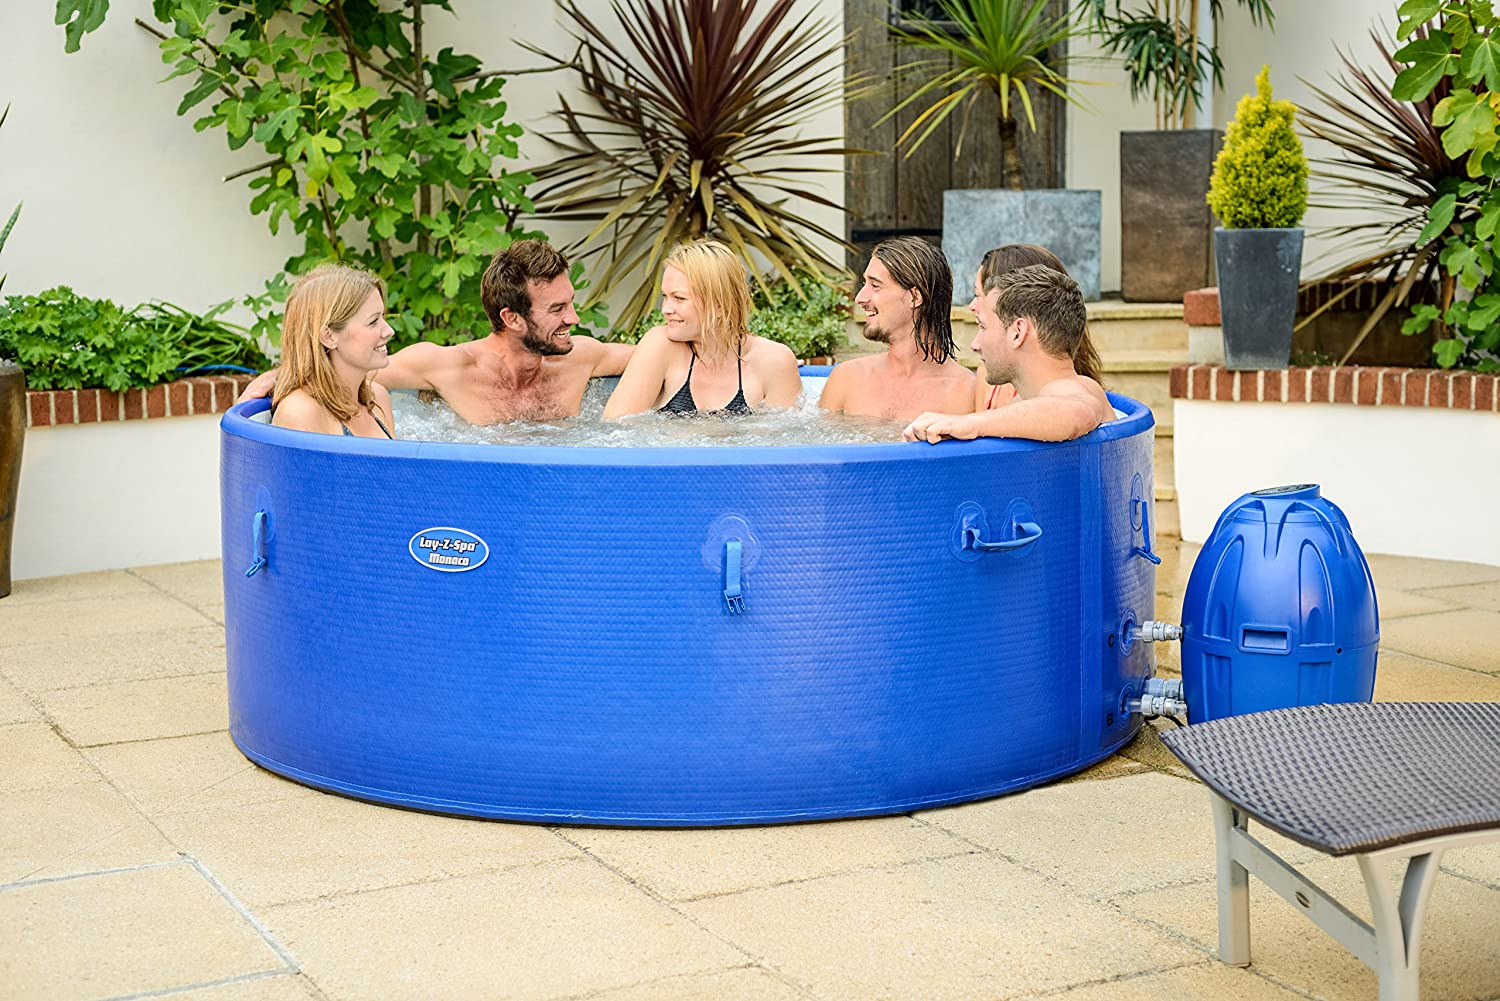 The Lay-Z-Spa Monaco is one of the biggest inflatable hot tubs on this list and will cost you over £550.